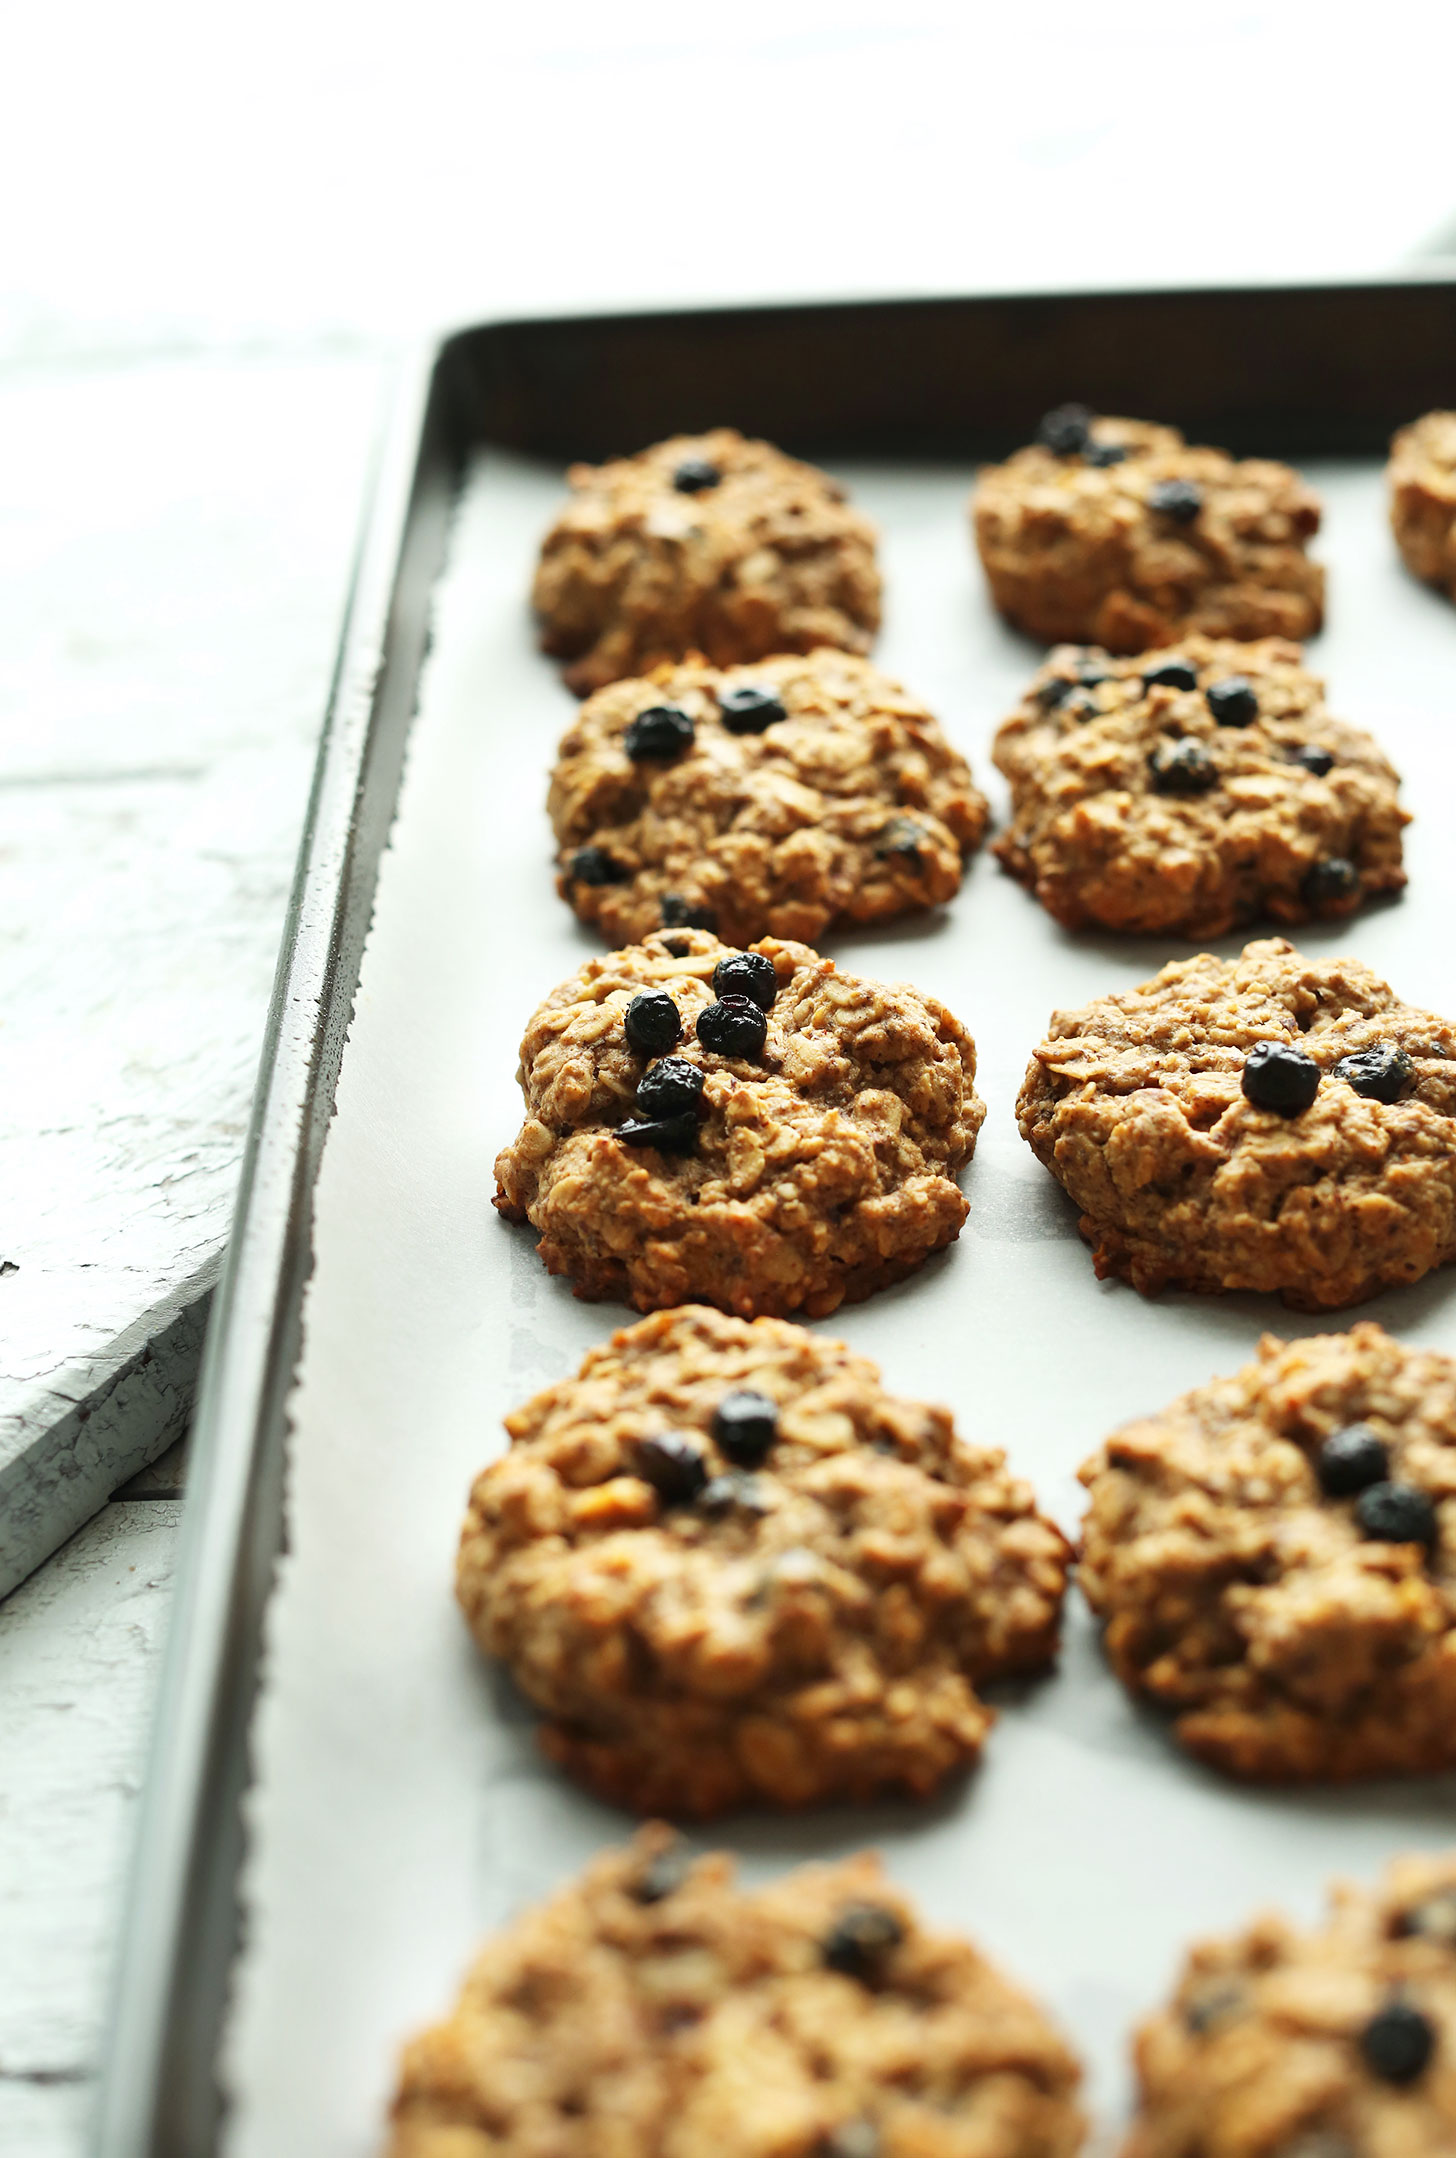 Baking sheet with freshly baked and naturally-sweetened Blueberry Muffin Breakfast Cookies